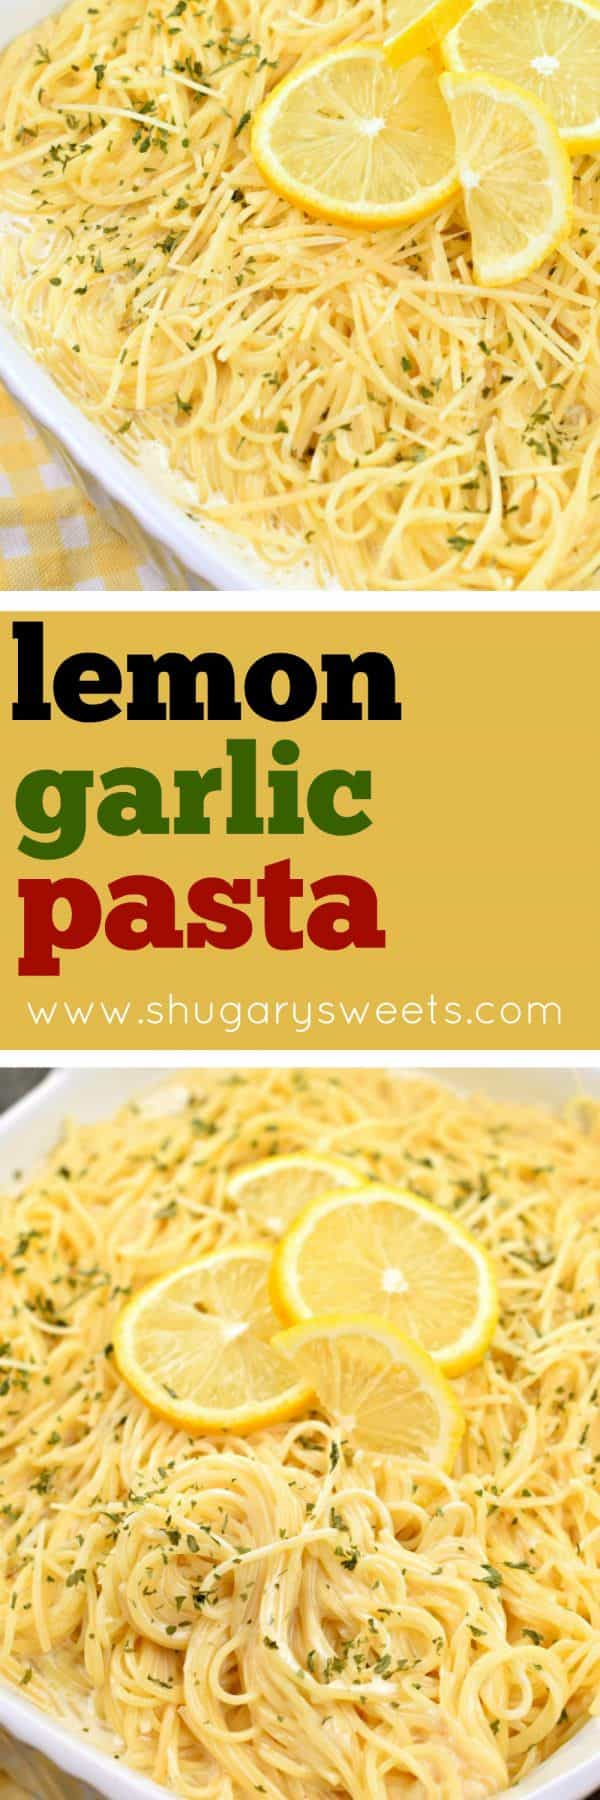 You'll love this tangy, Lemon Garlic Pasta as a side dish with your favorite chicken or fish! Or enjoy it as your main entree in under 30 minutes!